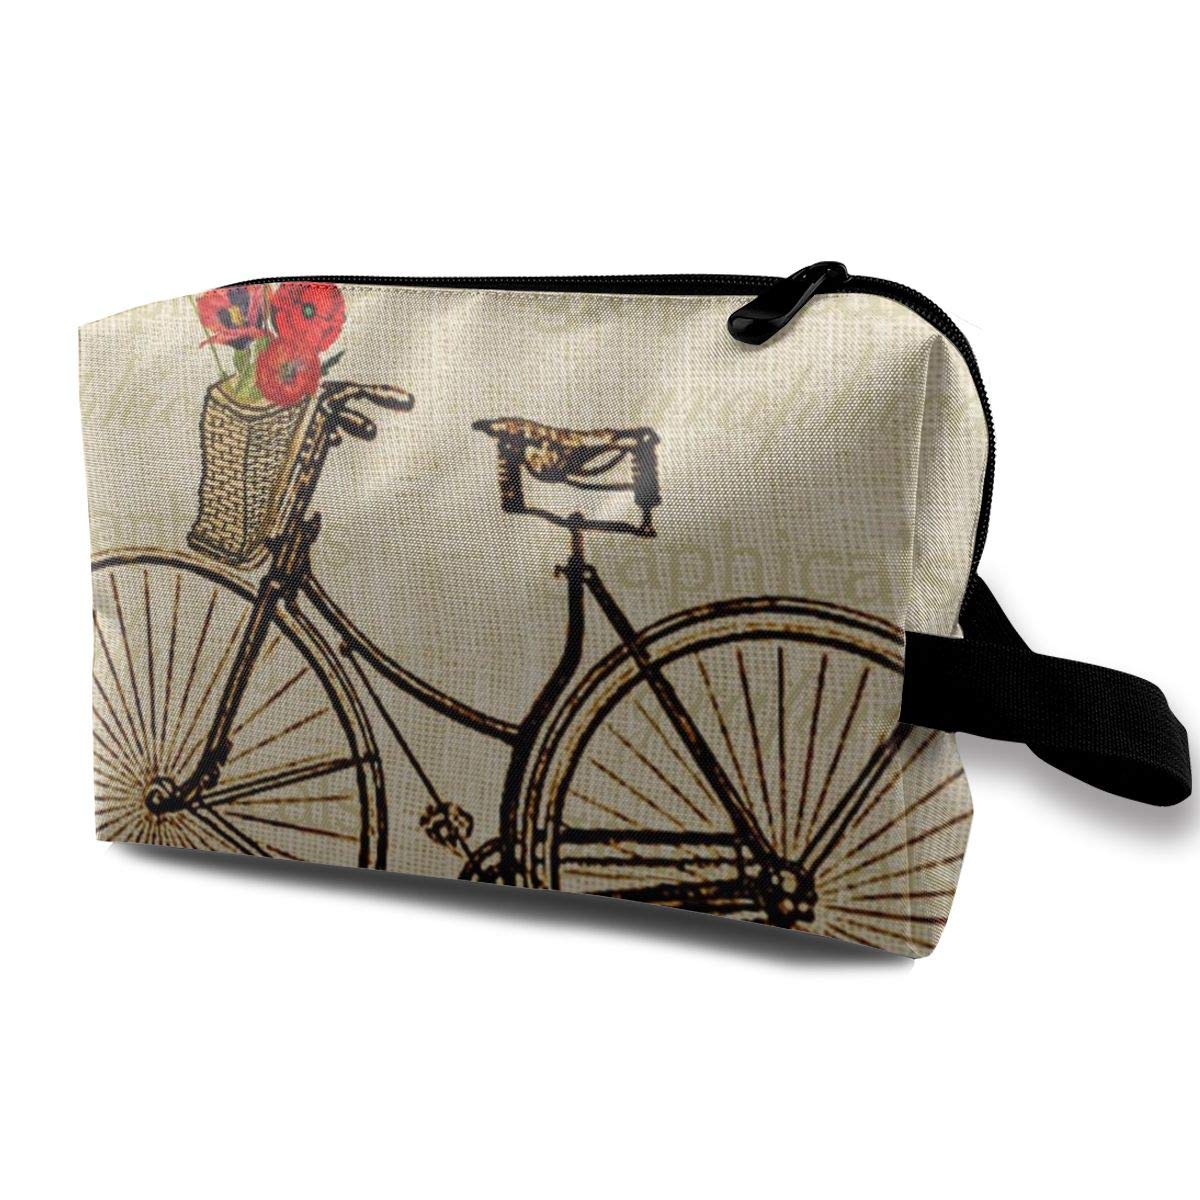 Vintage Bicycle Bike With Flowers Picture Toiletry Bag Multifunction Cosmetic Bag Portable Makeup Pouch Travel Organizer Bag For Women Girls